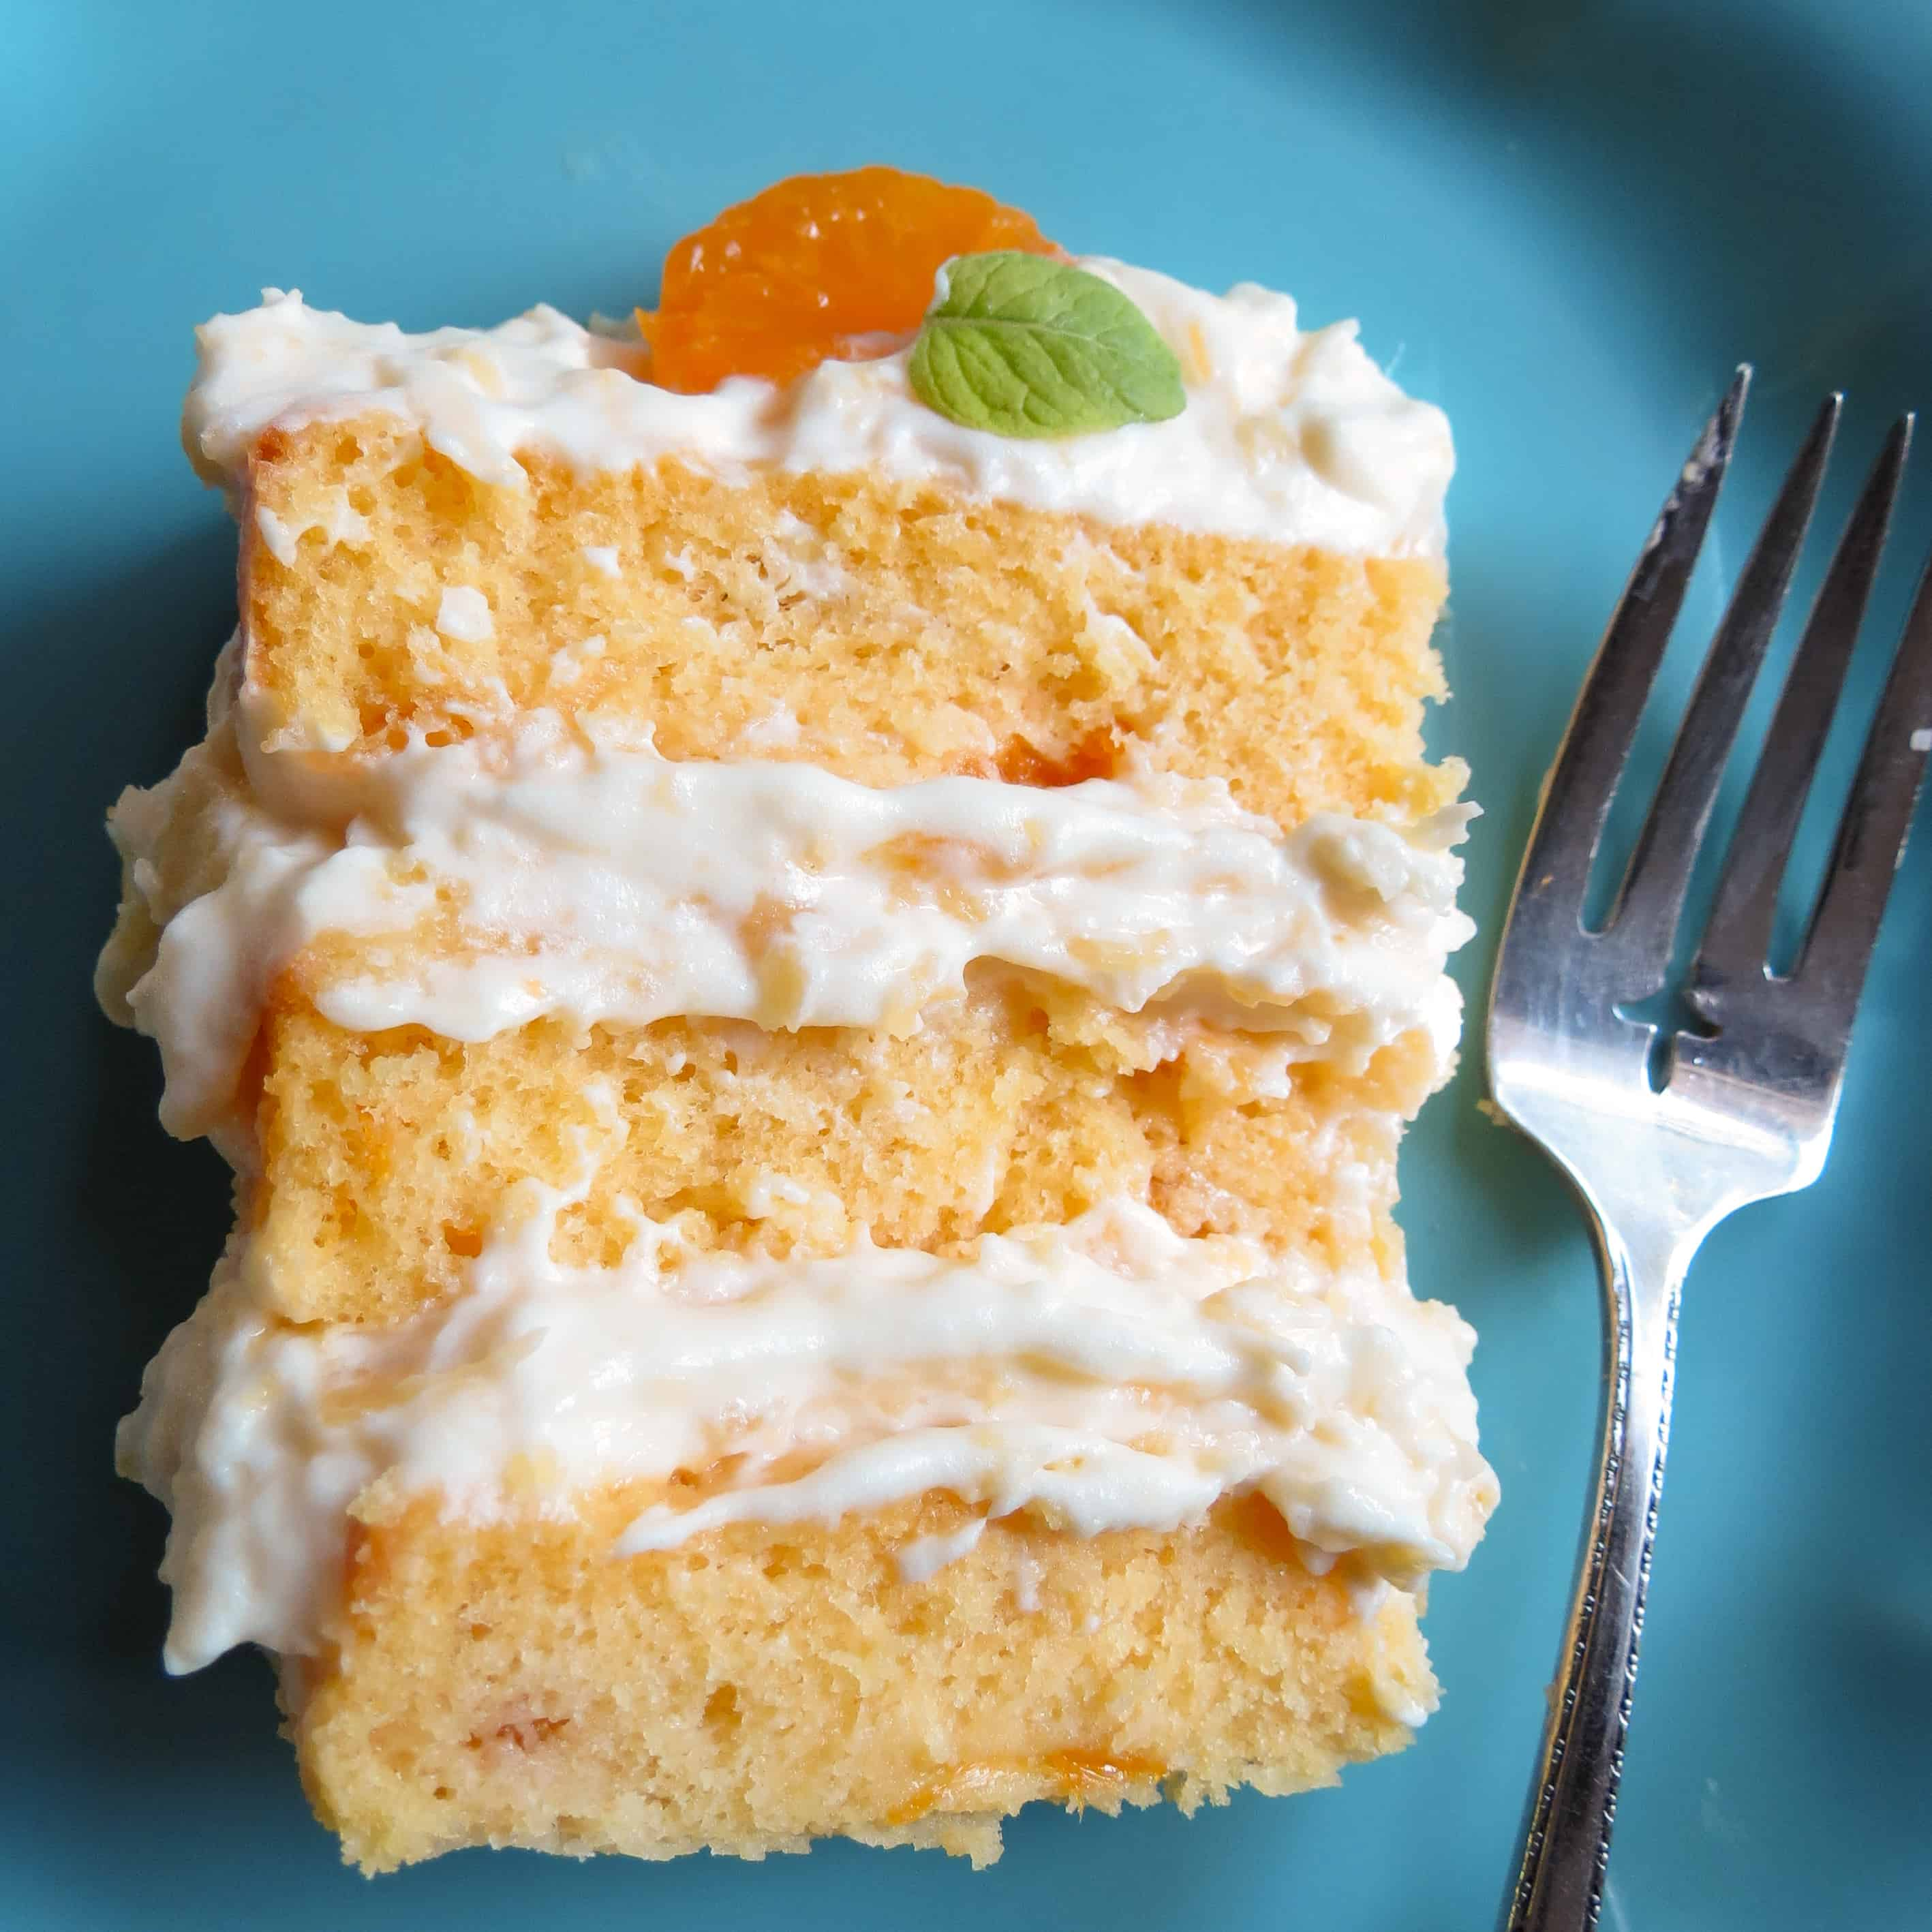 Mandaliscious Mandarin Orange Cake